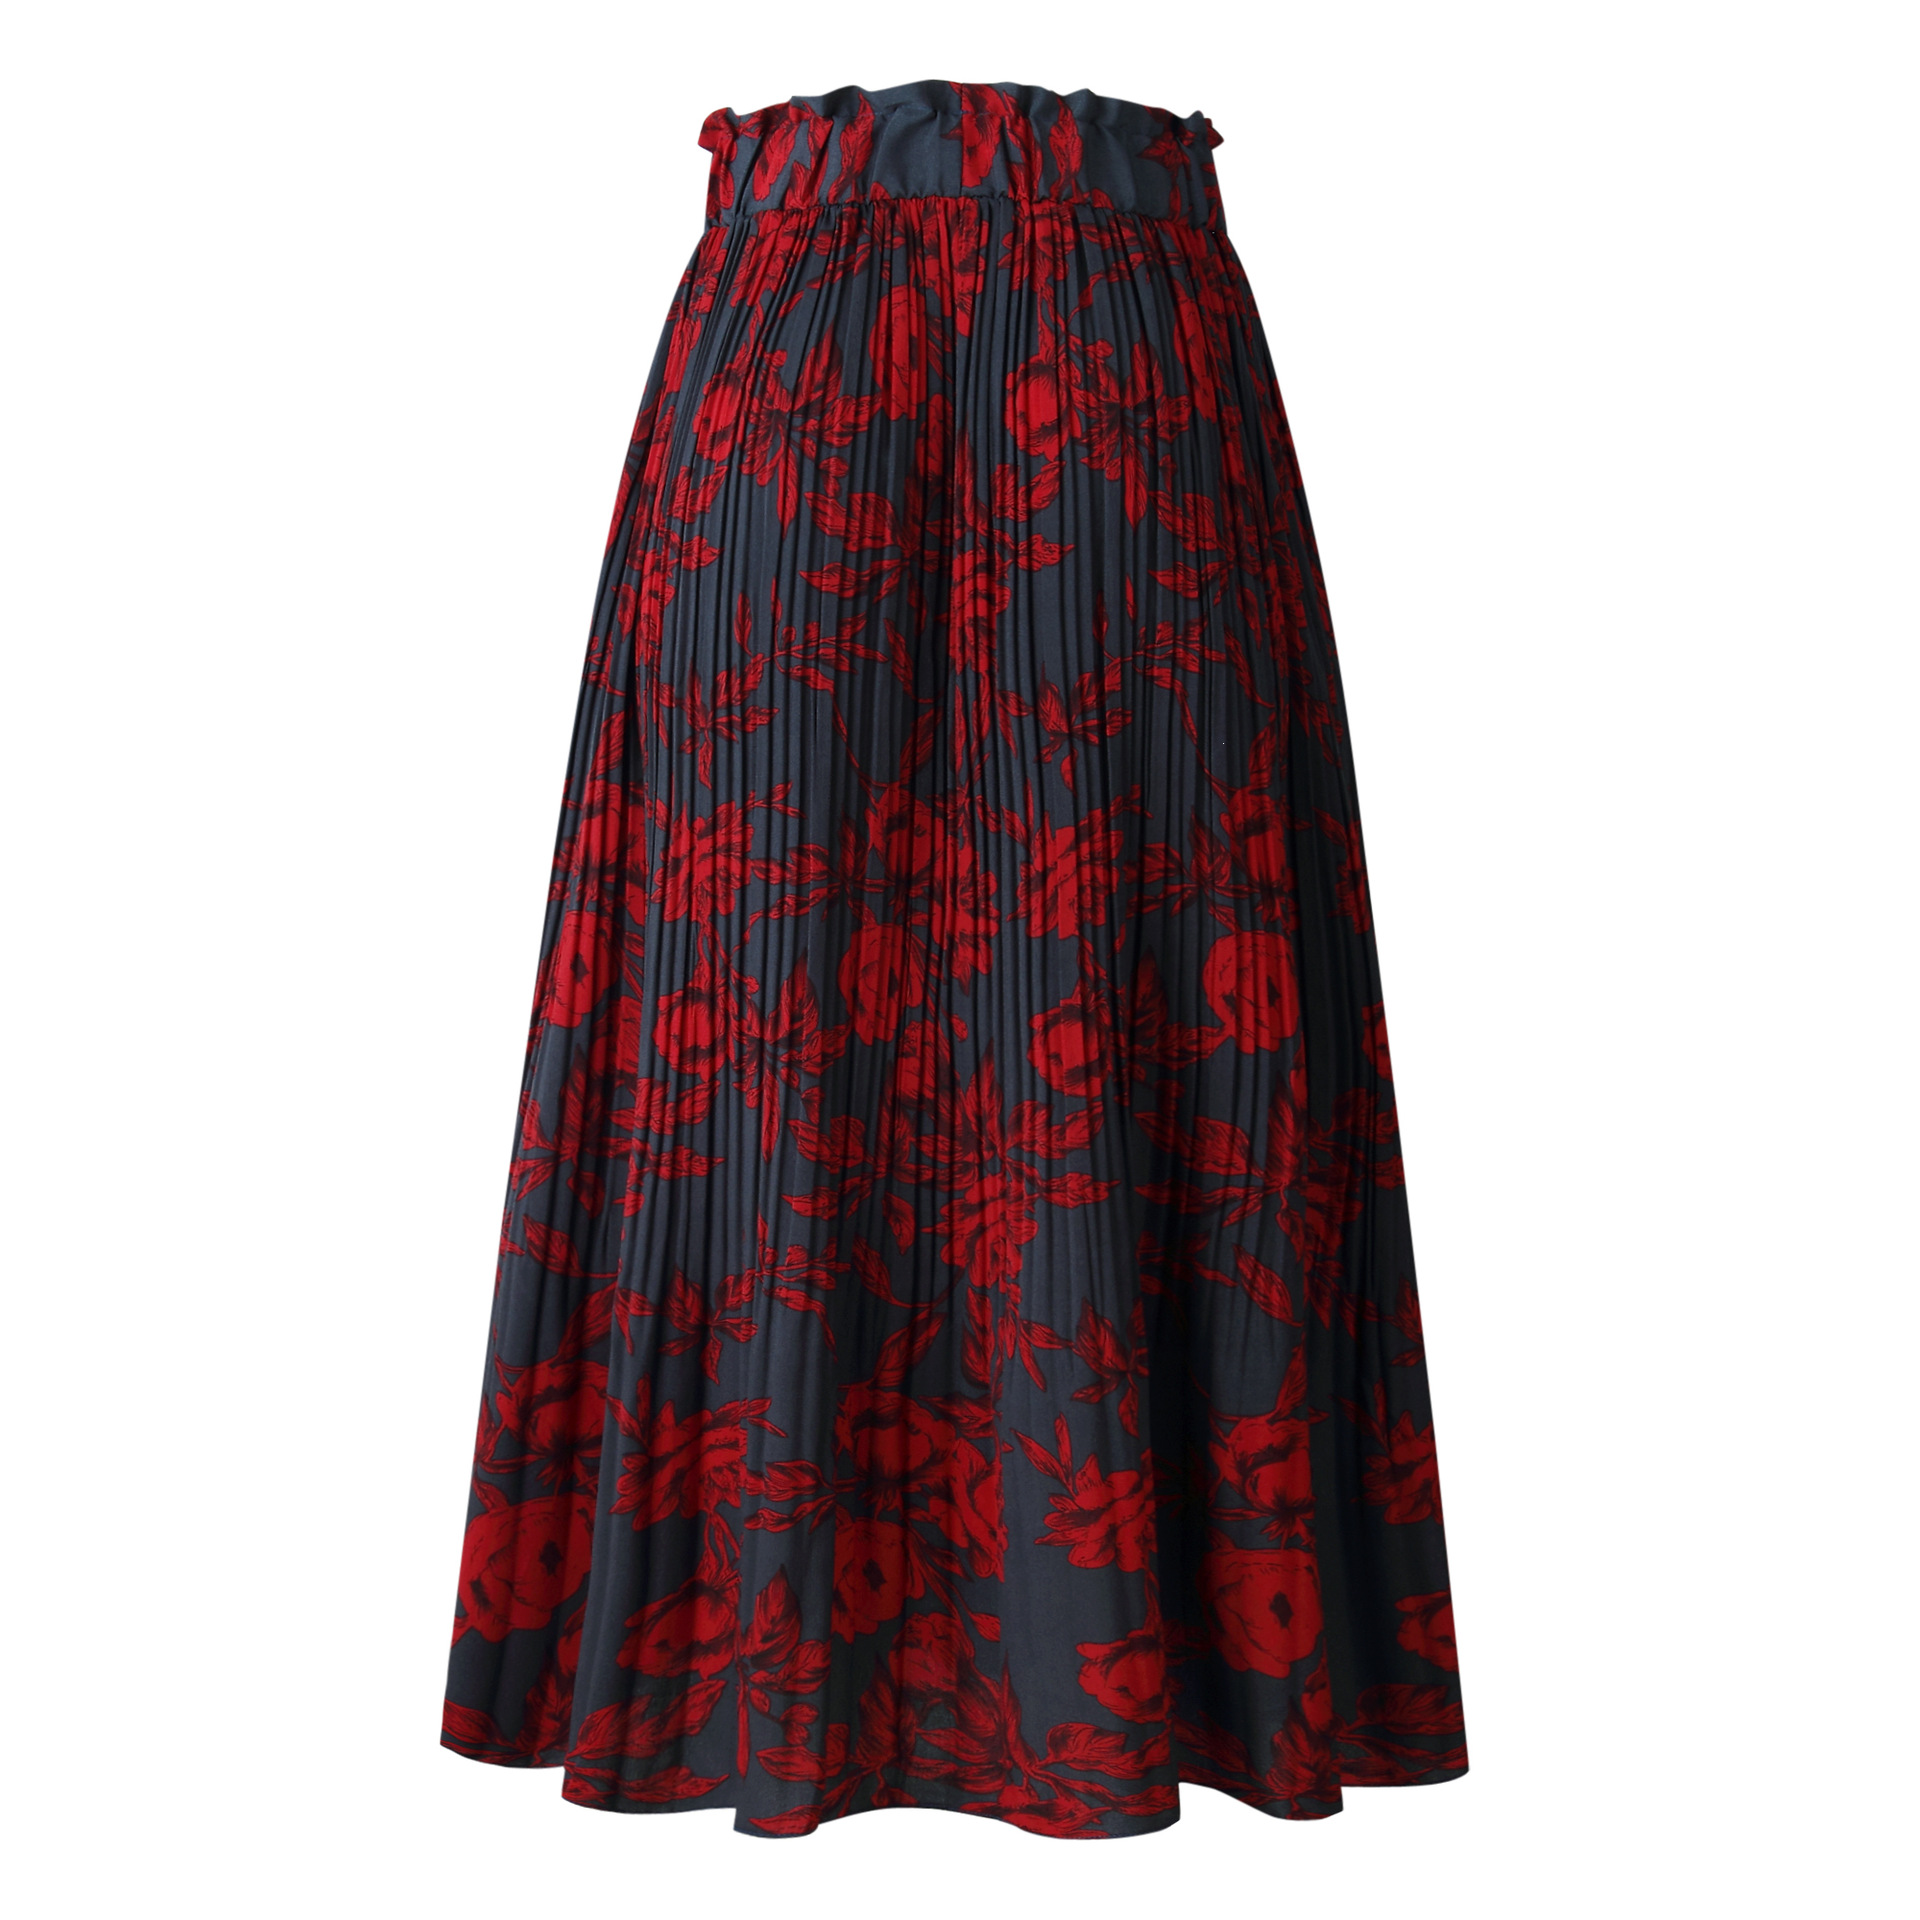 H2137262f7cf64b638eff55f34502115b0 - Summer Casual Chiffon Print Pockets High Waist Pleated Maxi Skirt Womens Long Skirts For Women